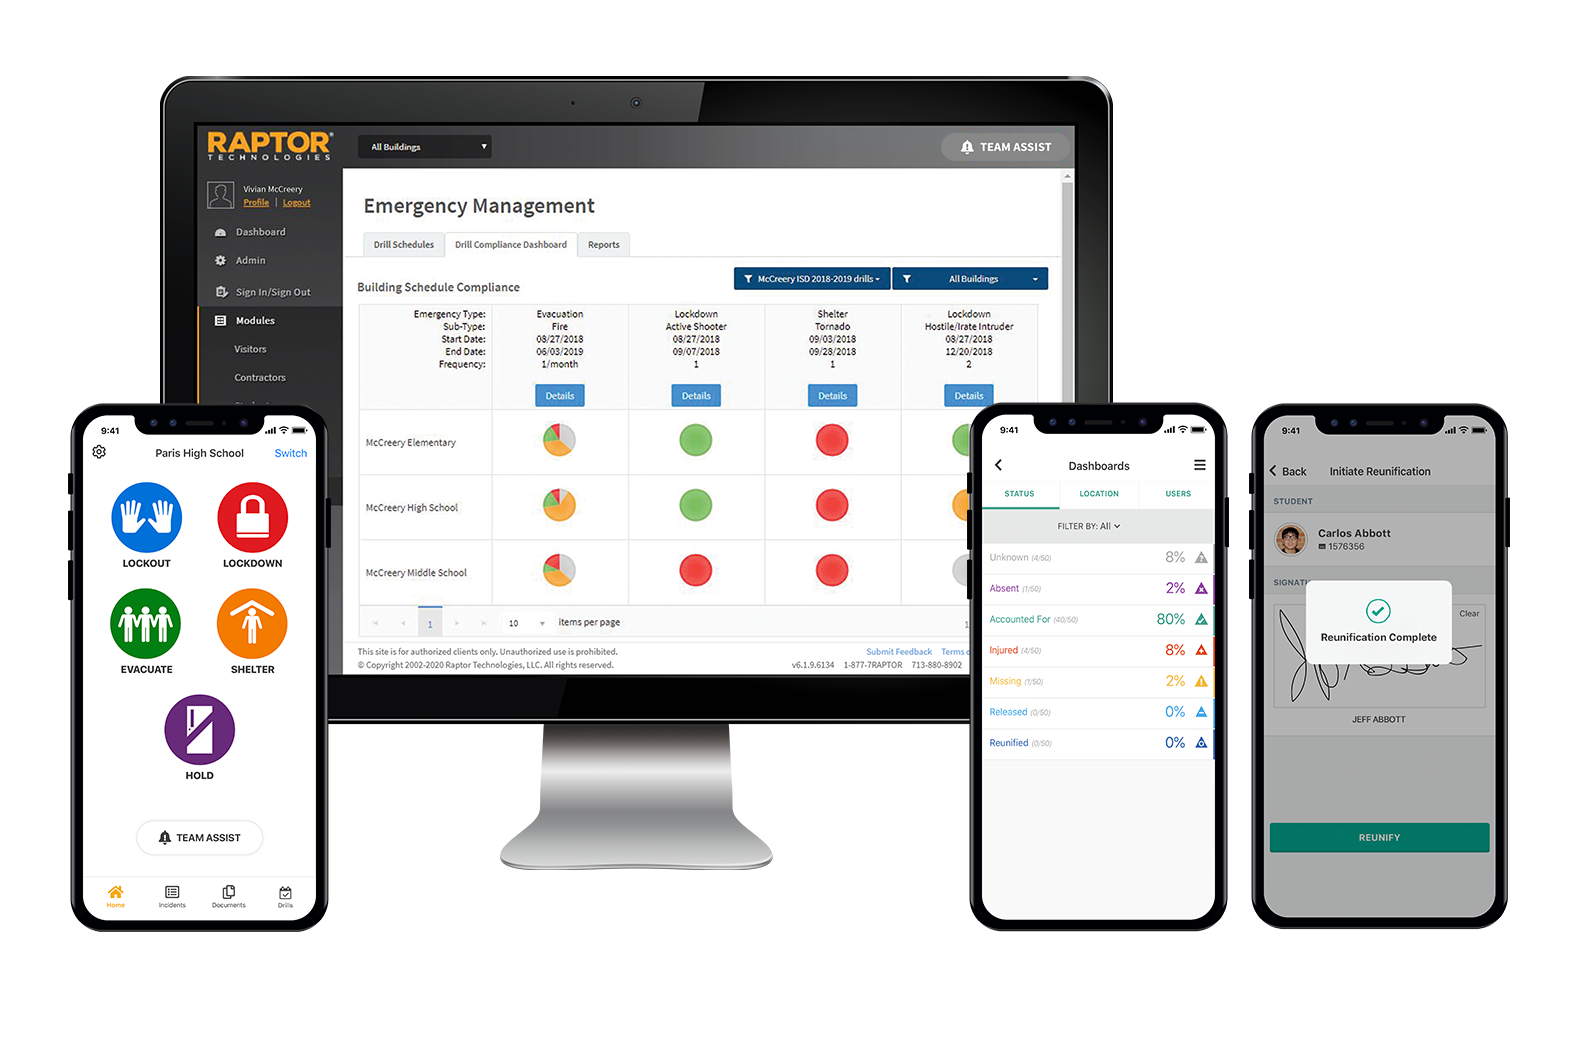 Integrated suite consists of Drill Manager, Alert, Accountability, and Reunification to help expedite emergency preparedness, response, and recovery.